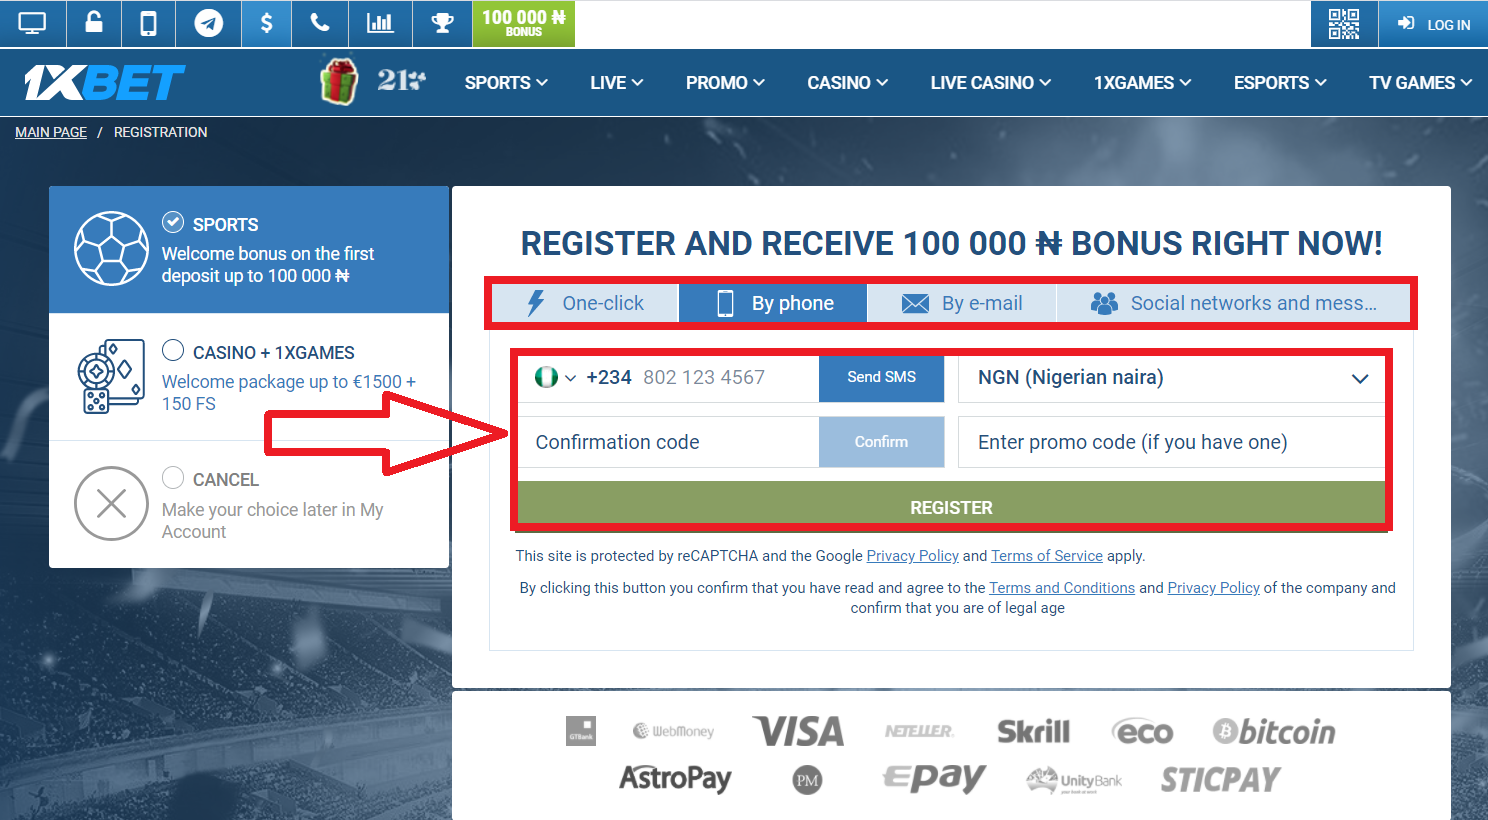 1xBet registration promo through social networks and instant messengers